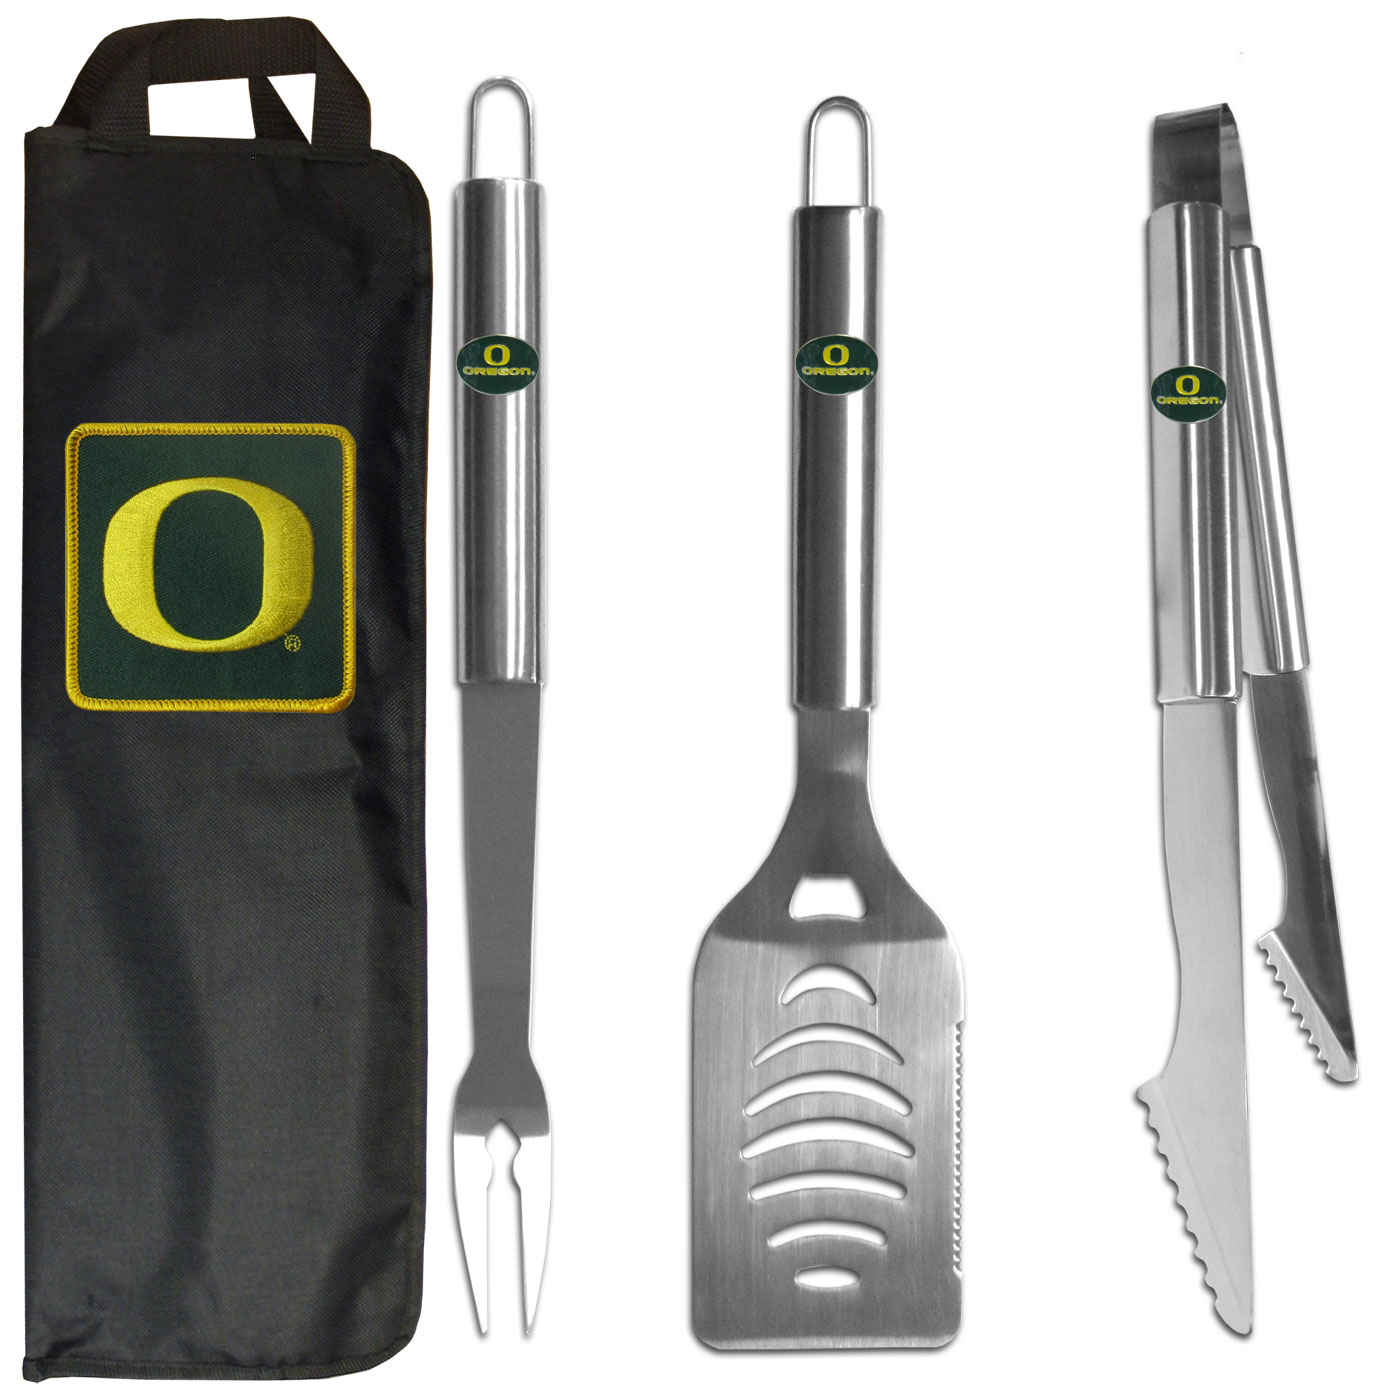 Oregon Ducks 3 pc Stainless Steel BBQ Set with Bag - Our Oregon Ducks stainless steel 3 pc BBQ tool set includes a large spatula with built in bottle opener, heavy duty tongs, and large fork. All the tools feature a team logo on the handle. The set comes with a durable canvas bag that has a chrome accented team logo.